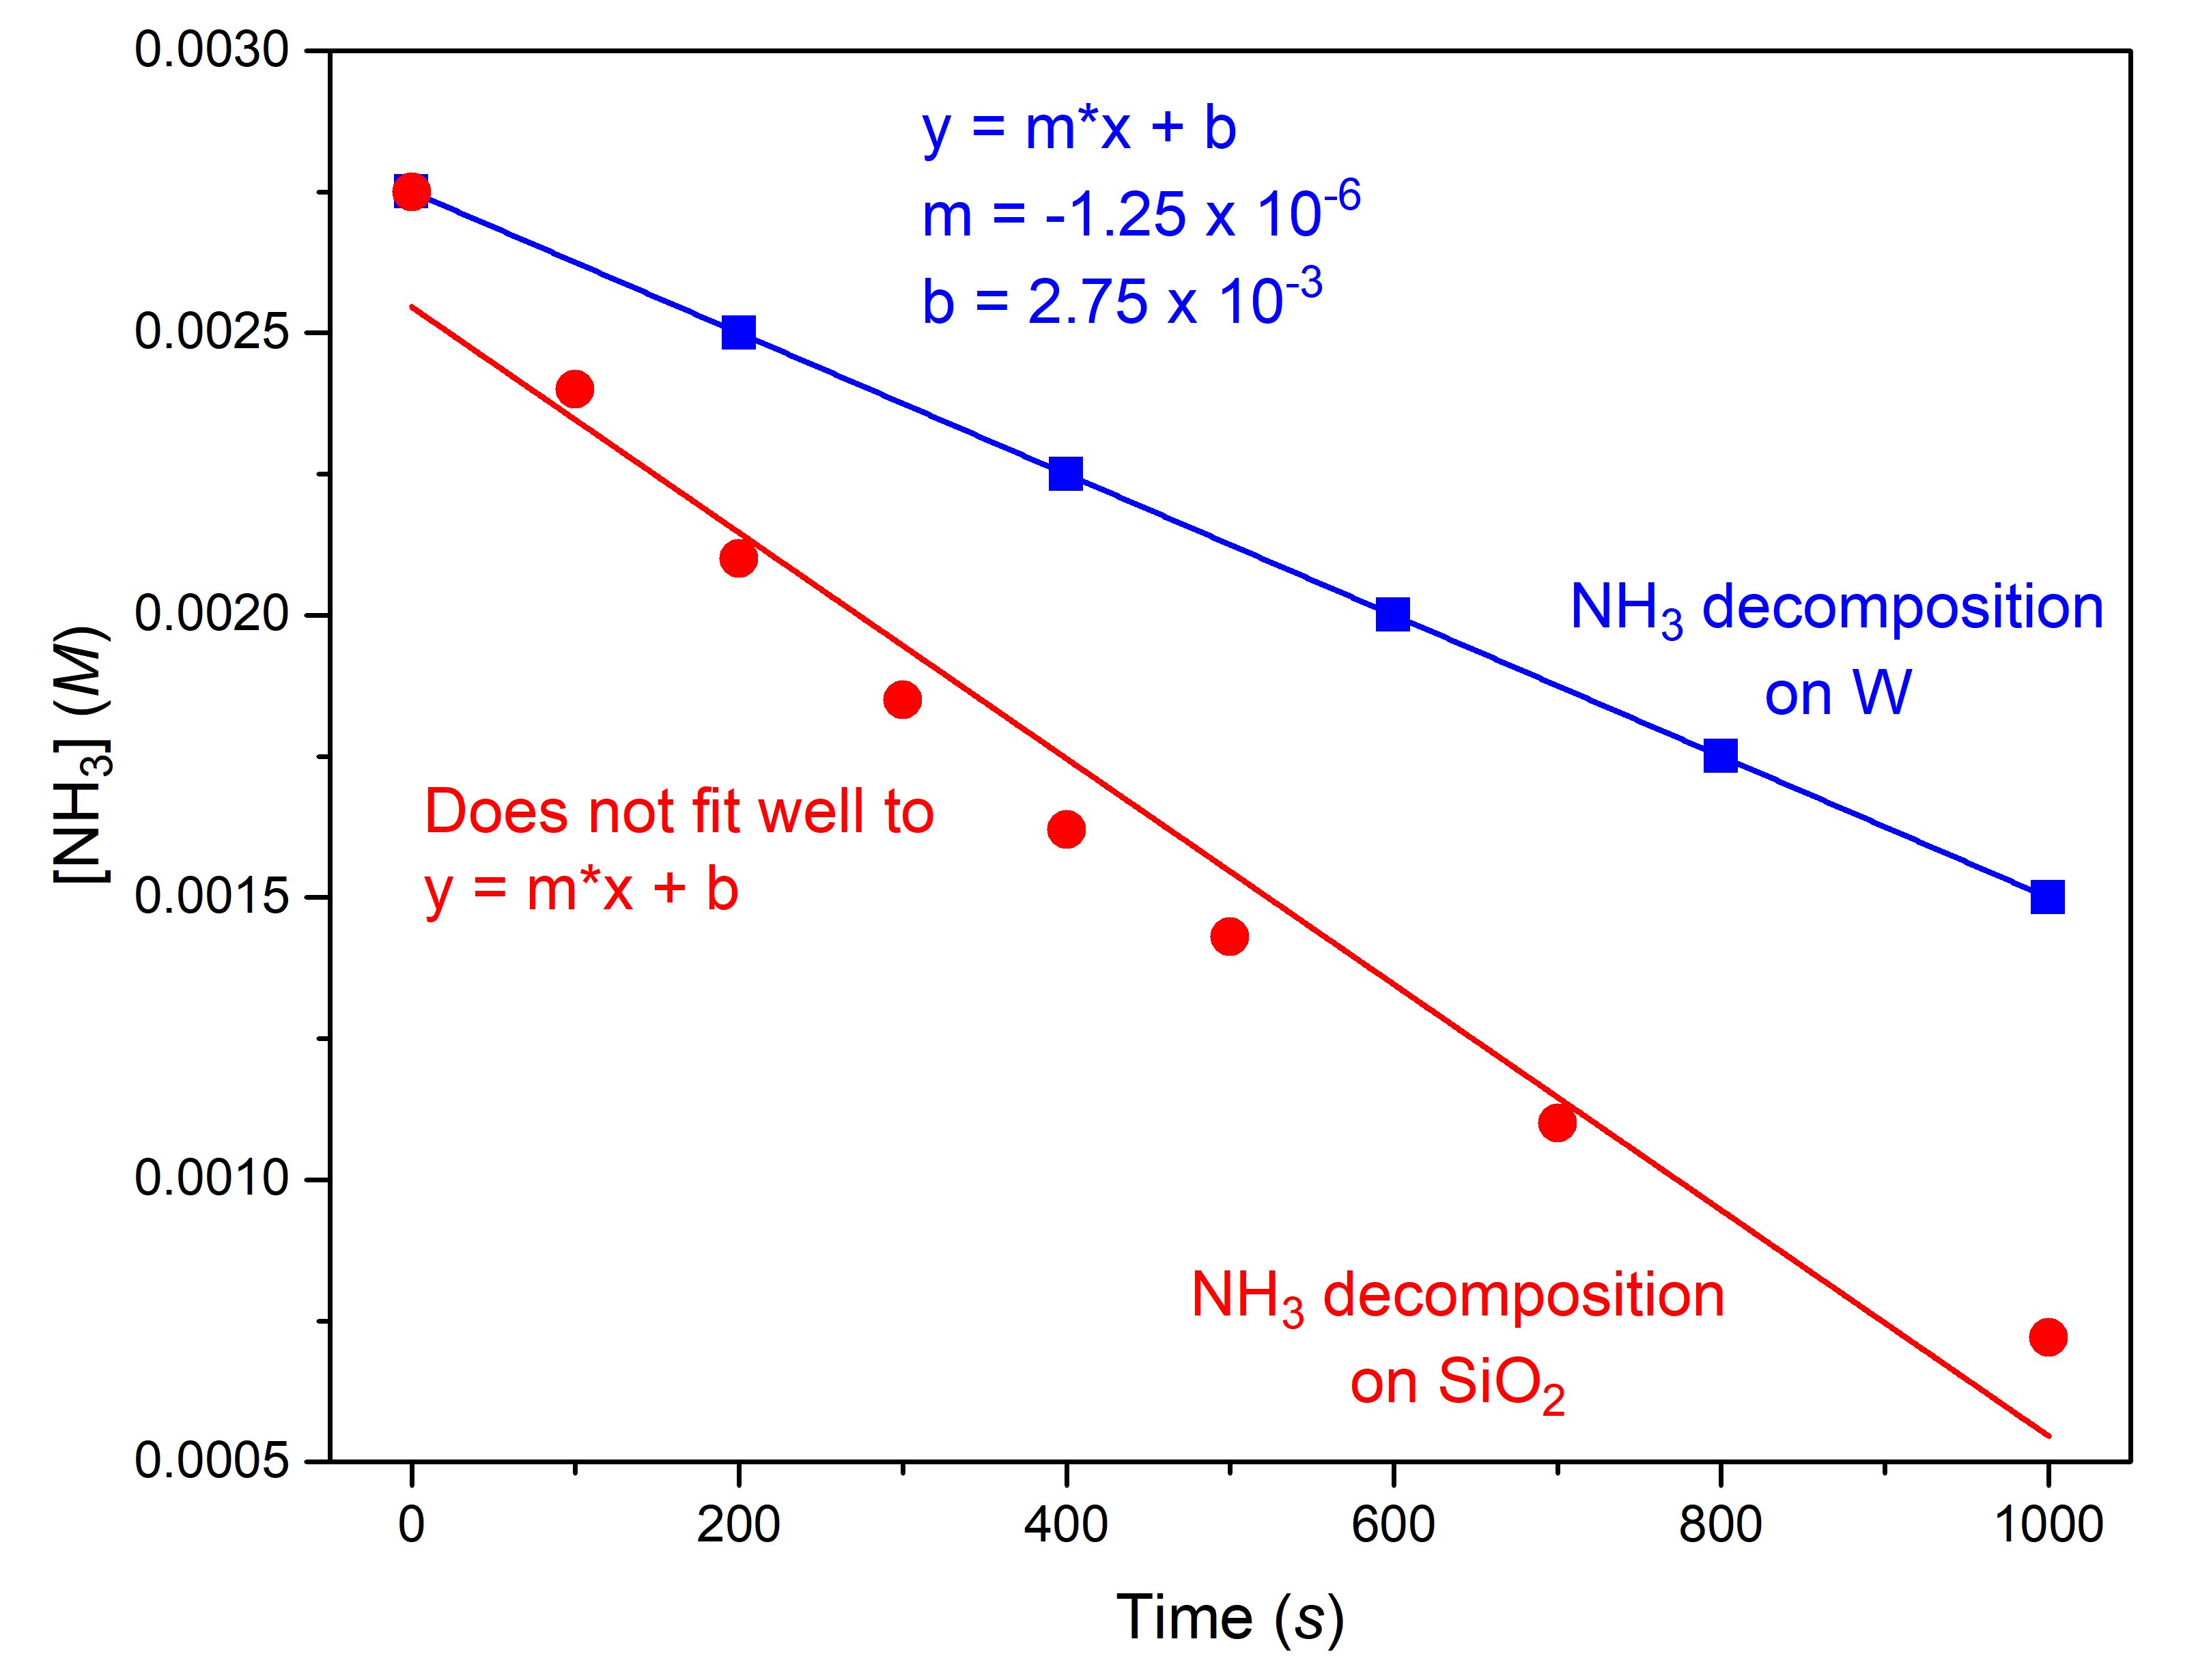 """Time ( s ),"""" on the x-axis and, """"[ N H subscript 3 ] M,"""" on the y-axis. The x-axis shows a single value of 1000 marked near the right end of the axis. The vertical axis shows markings at 1.0 times 10 superscript negative 3, 2.0 times 10 superscript negative 3, and 3.0 times 10 superscript negative 3. A decreasing linear trend line is drawn through six points. This line is labeled """"NH3 decomposition on W."""" A decreasing slightly concave up curve is similarly drawn through eight points. This curve is labeled """"NH3 decomposition on S i O subscript 2."""""""